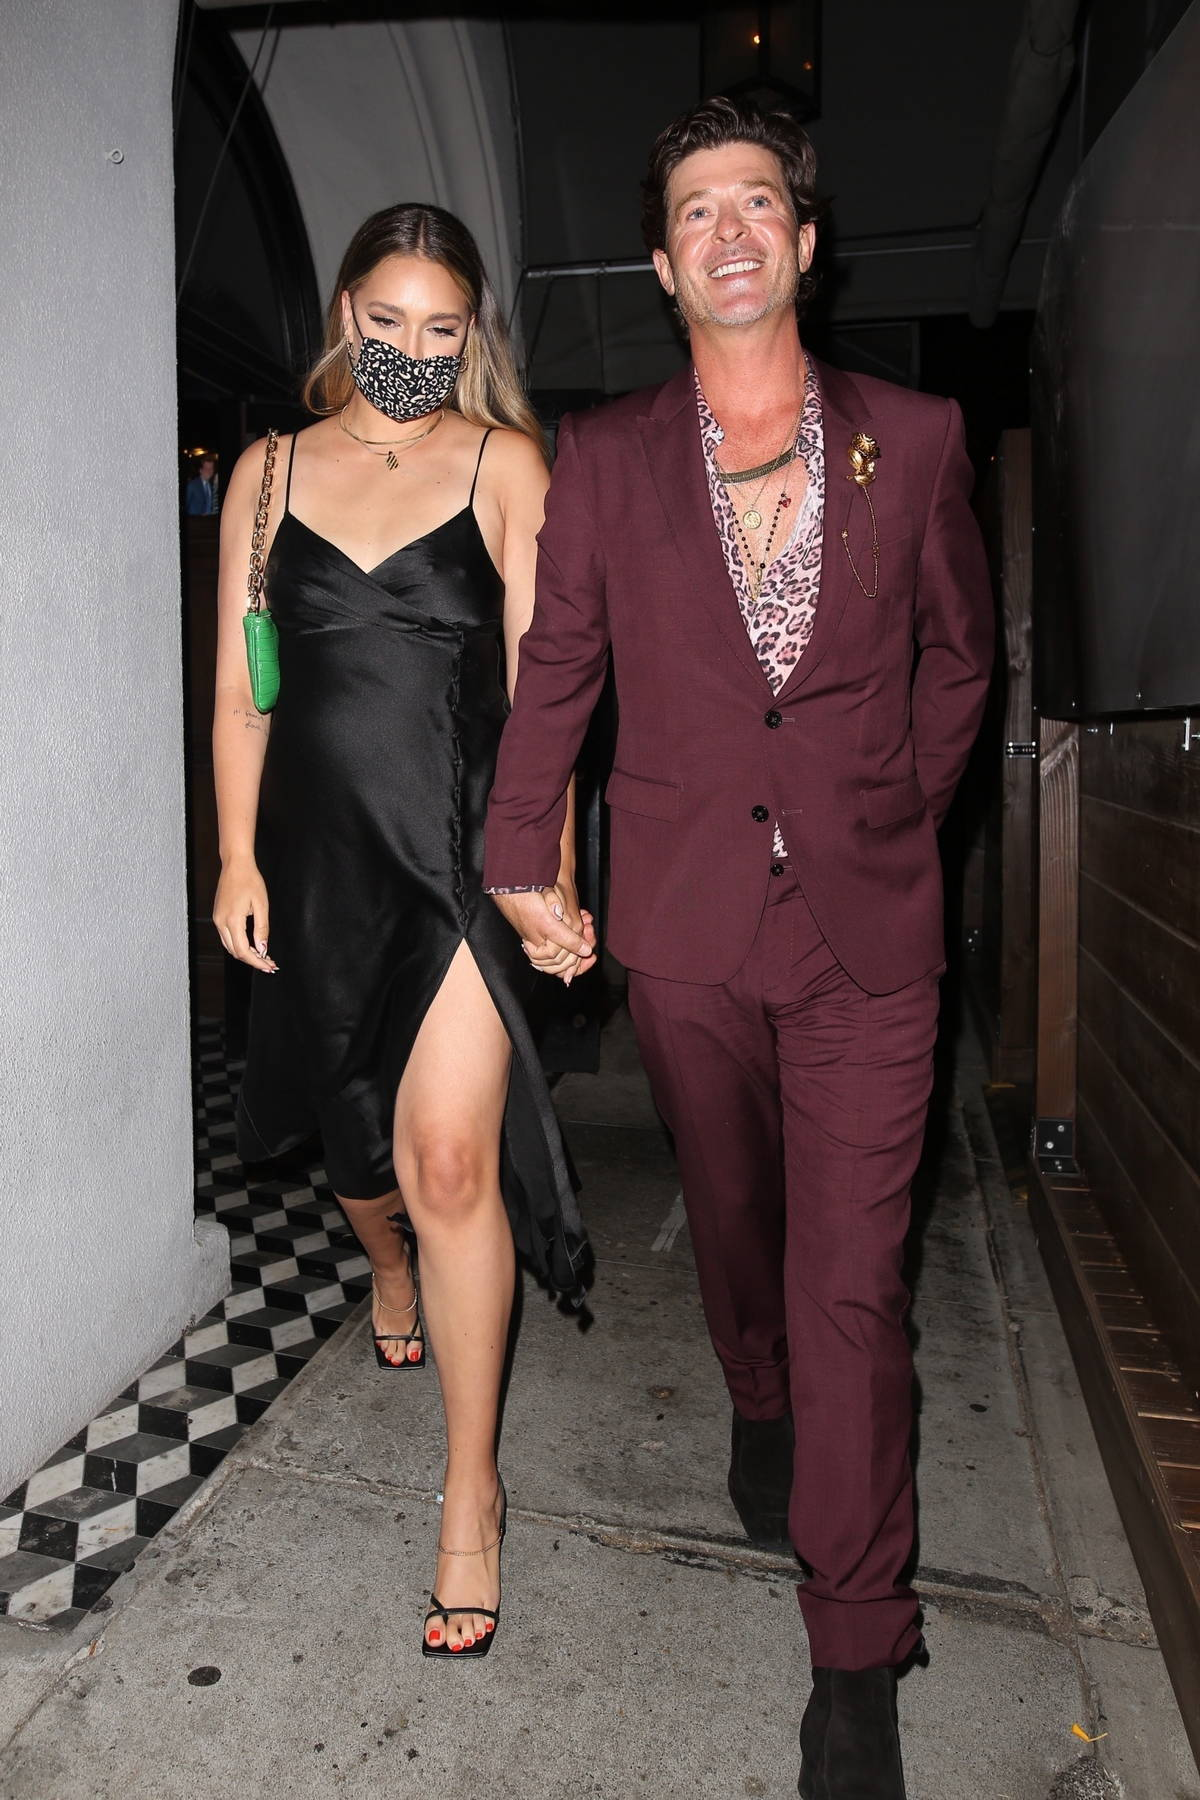 April Love Geary and Robin Thicke hold hands as they leave after dinner at Craig's in West Hollywood, California